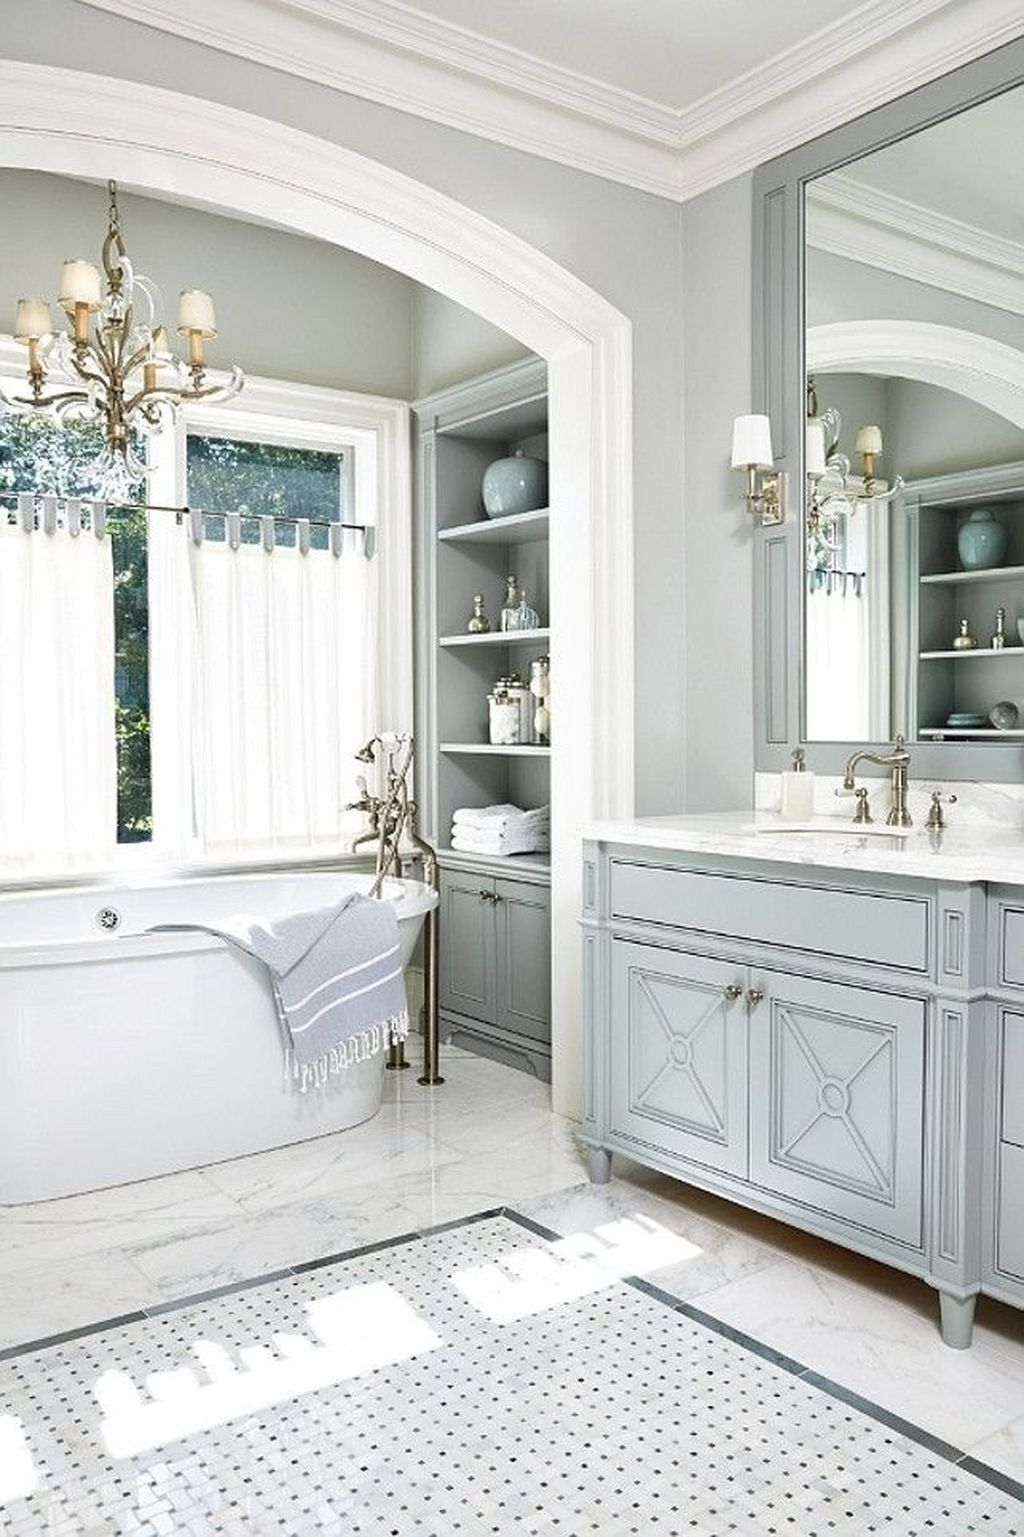 Beautiful Dream Bathroom Design Ideas For Your Home 11 | Pinterest ...